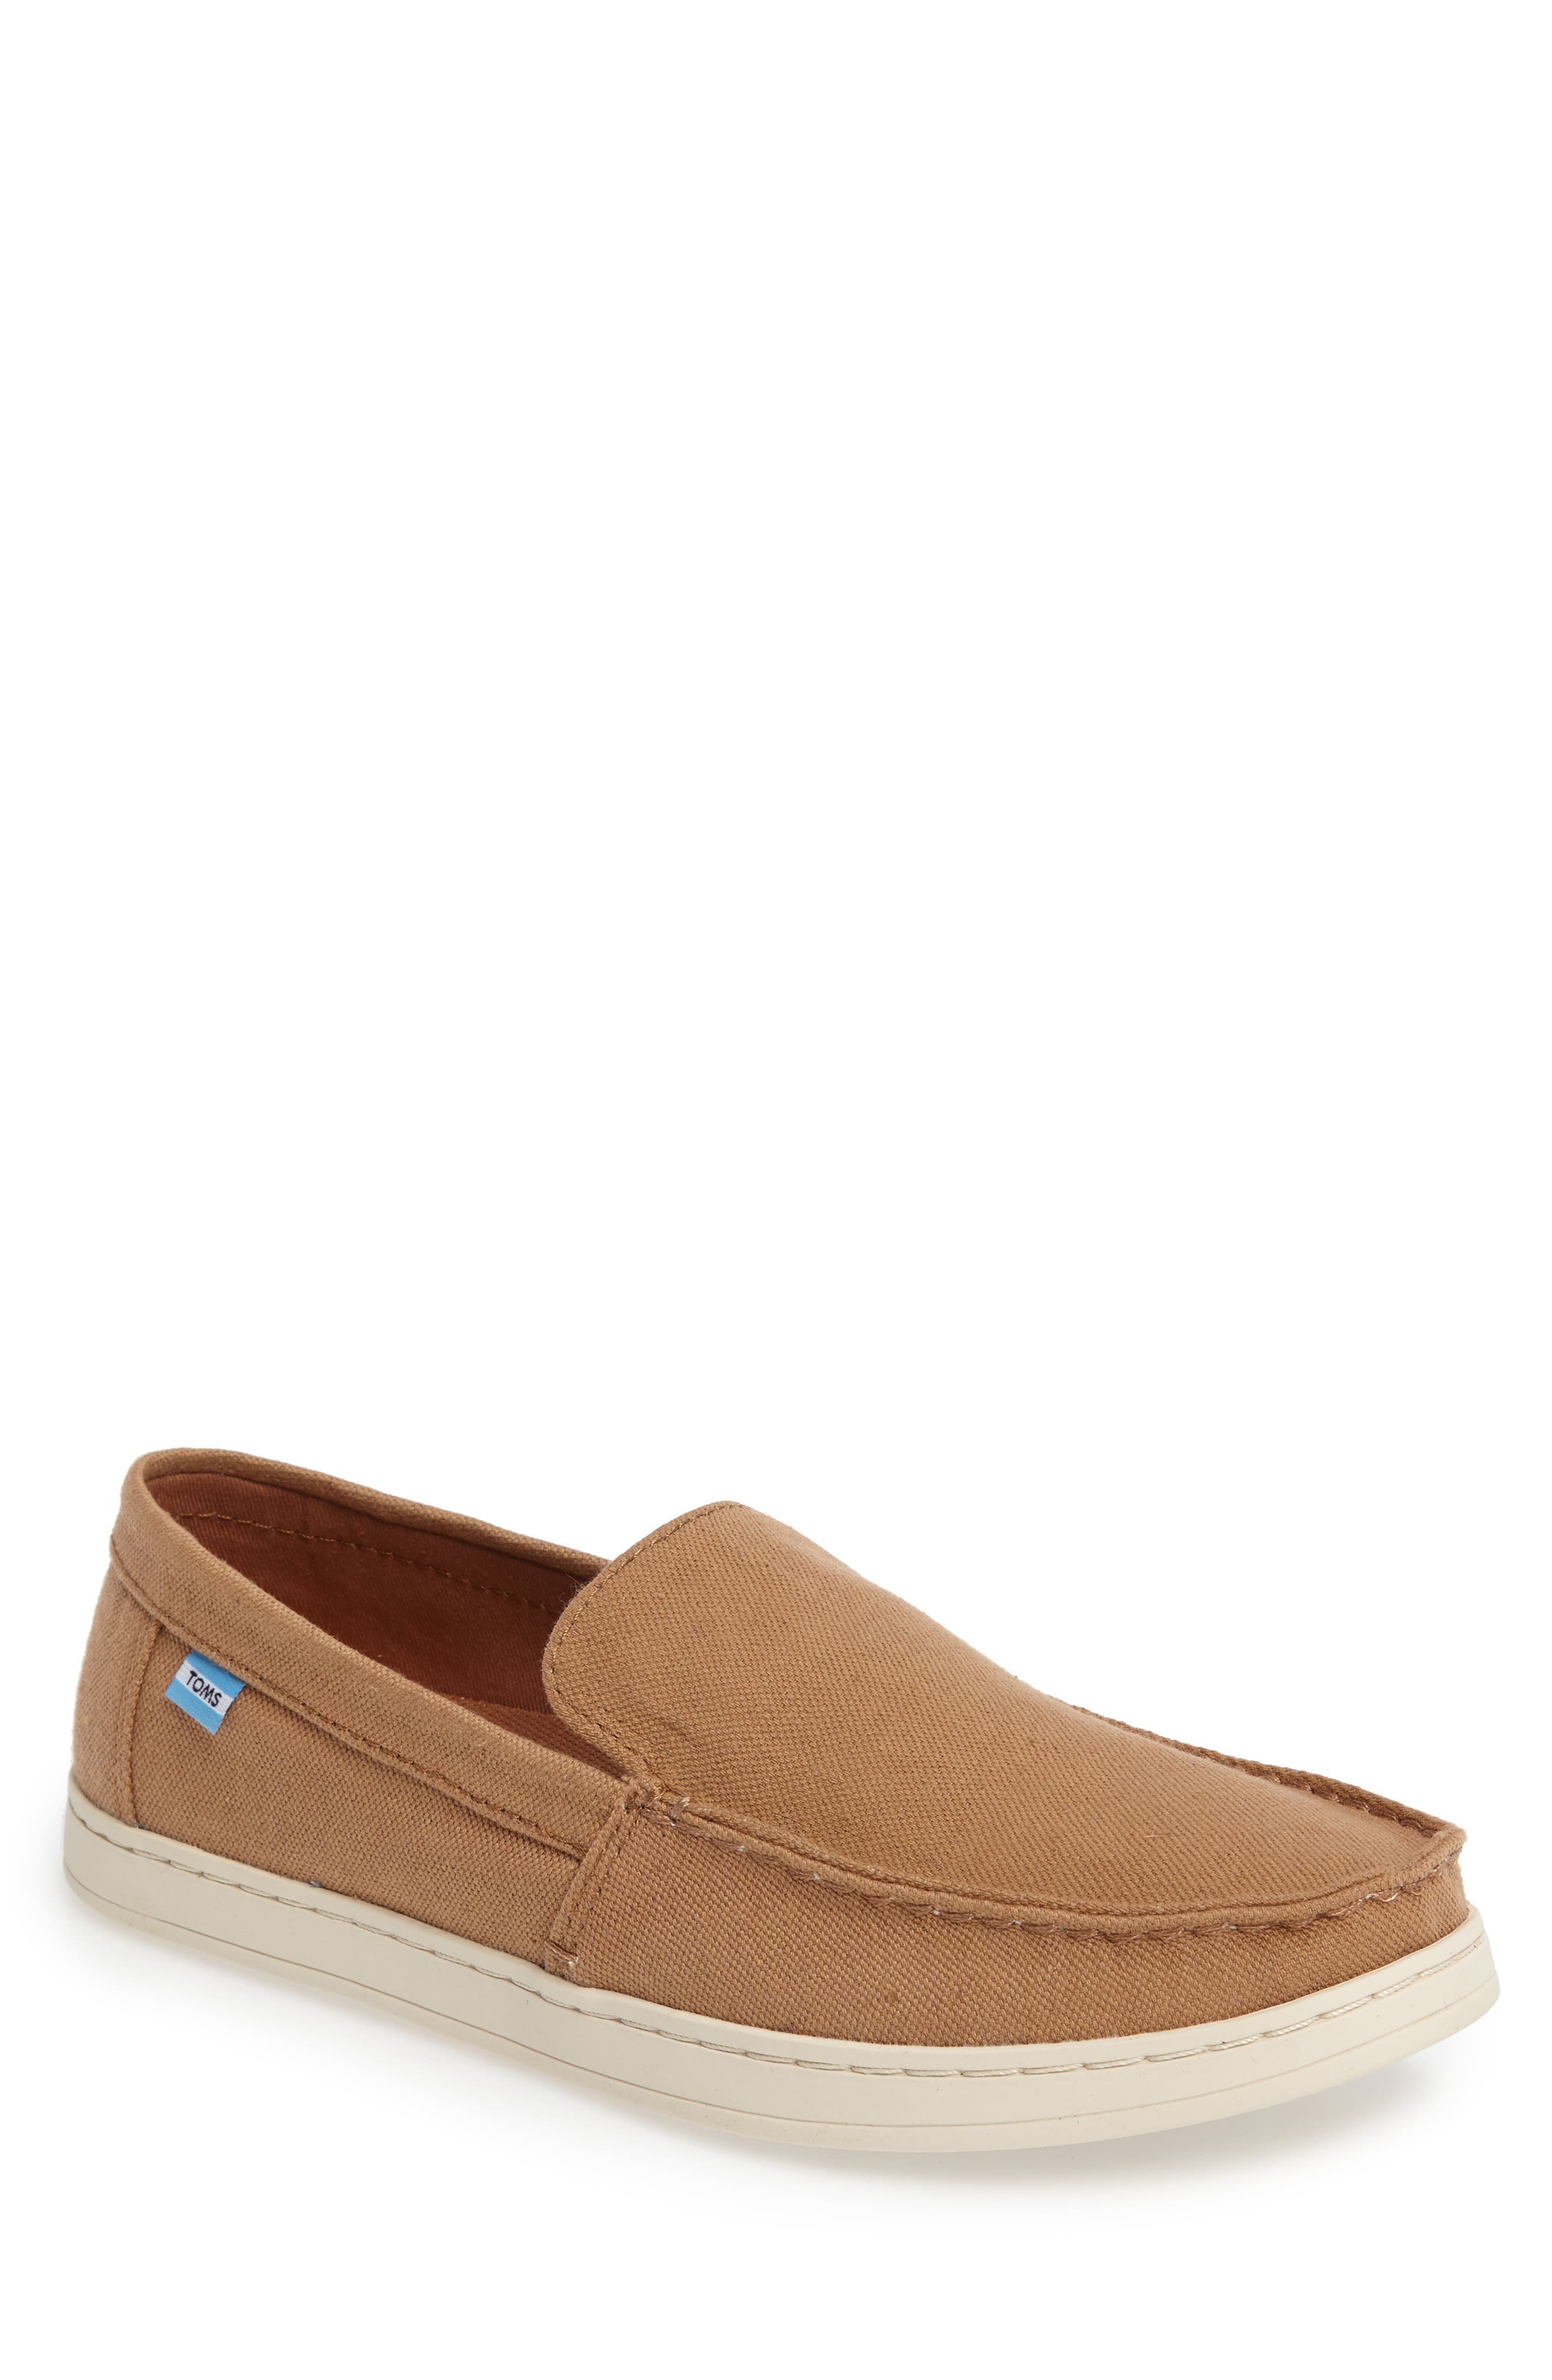 Aiden Slip-On Loafer,                         Main,                         color, 210